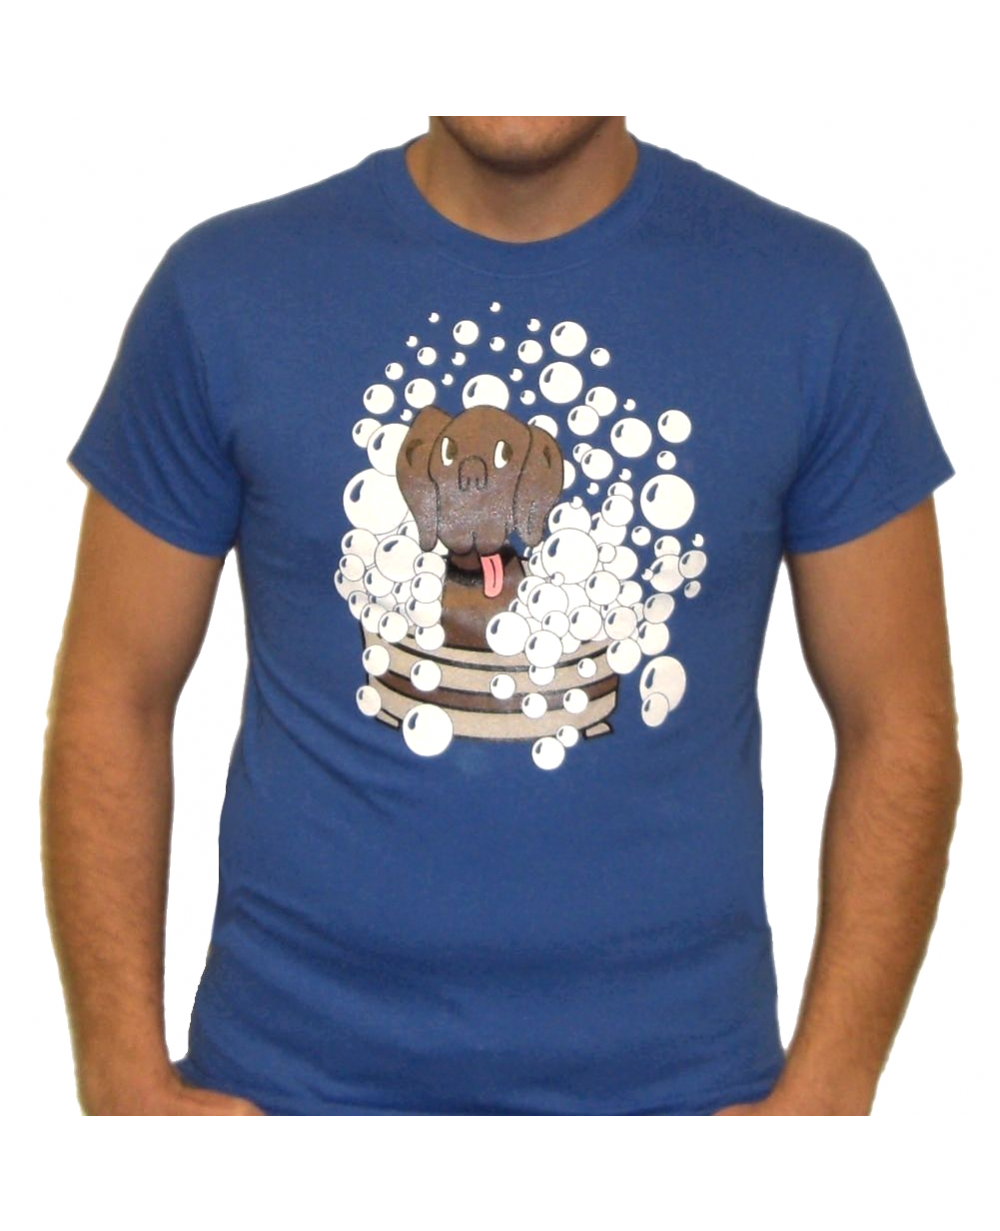 Team Pup and Suds T-Shirt